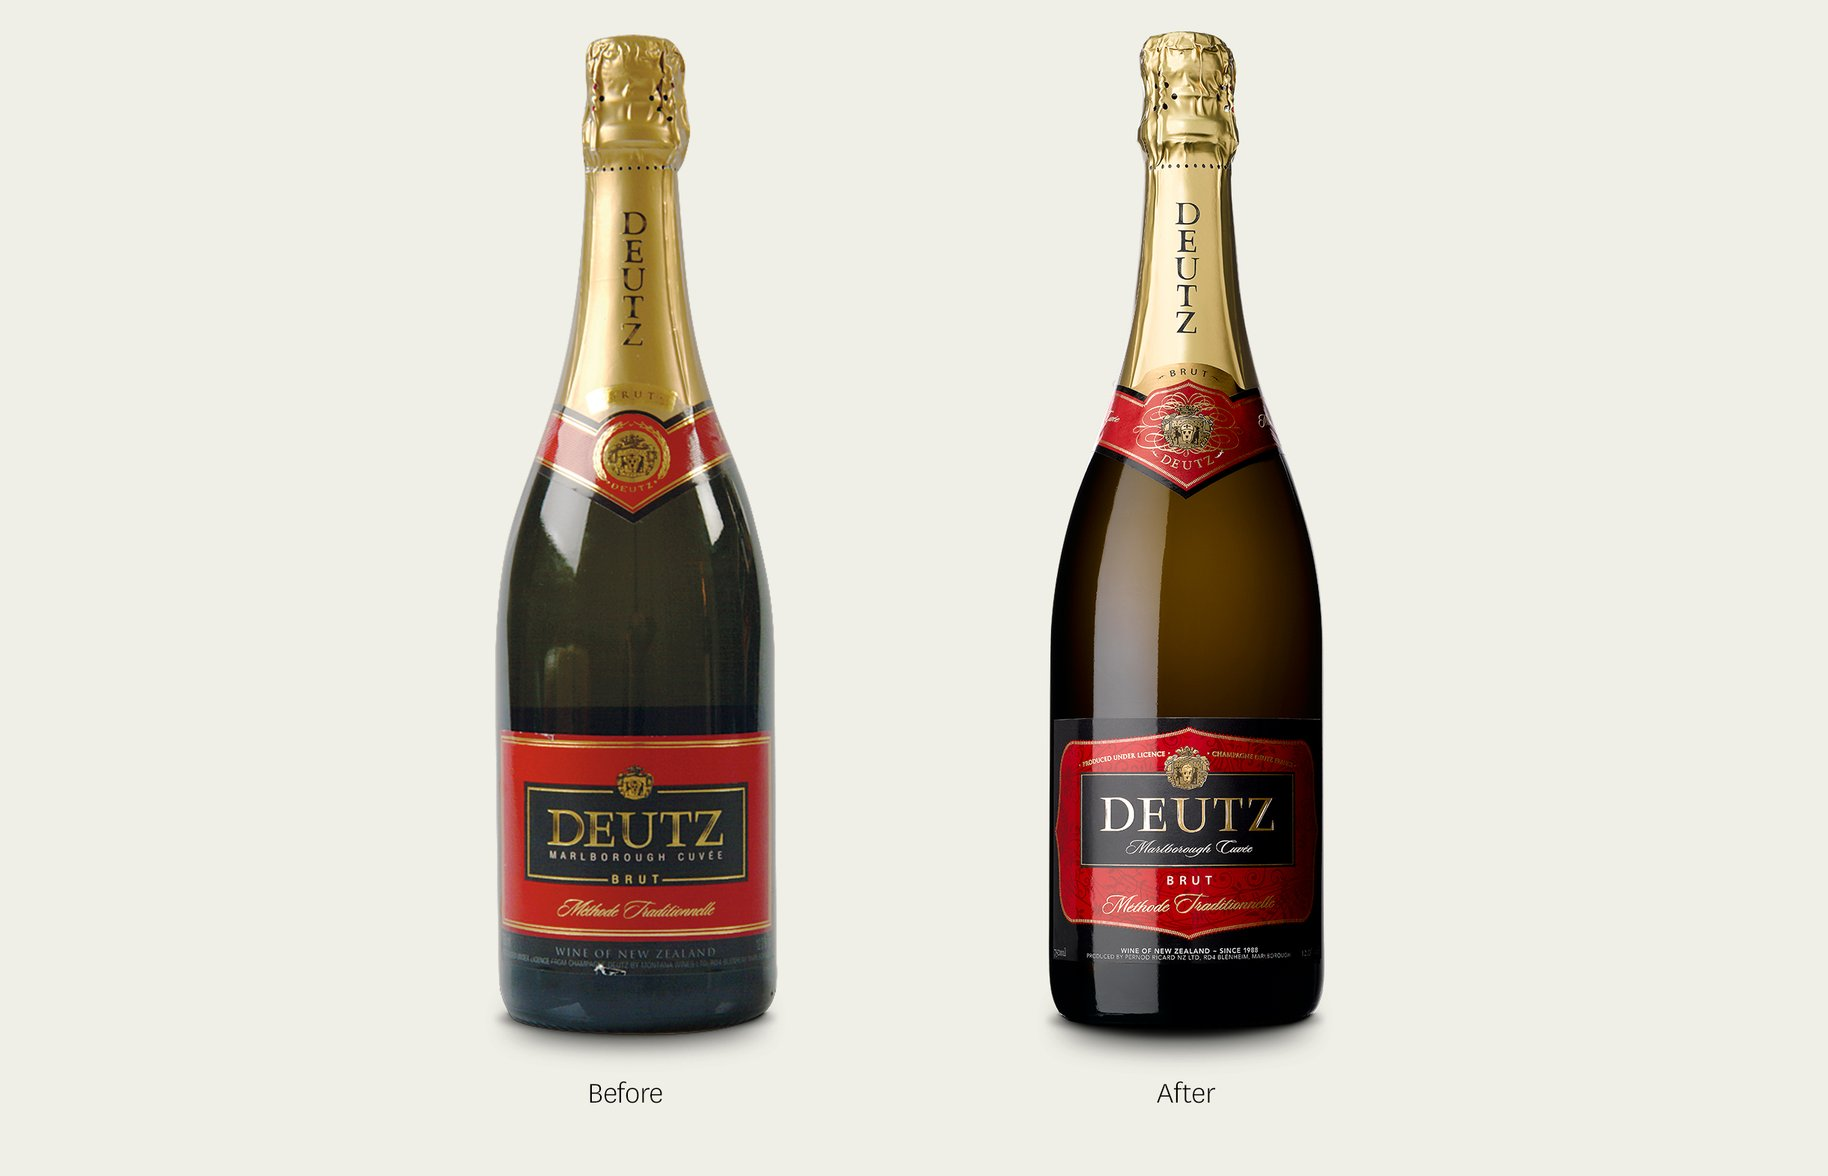 Deutz bottle packaging before and after